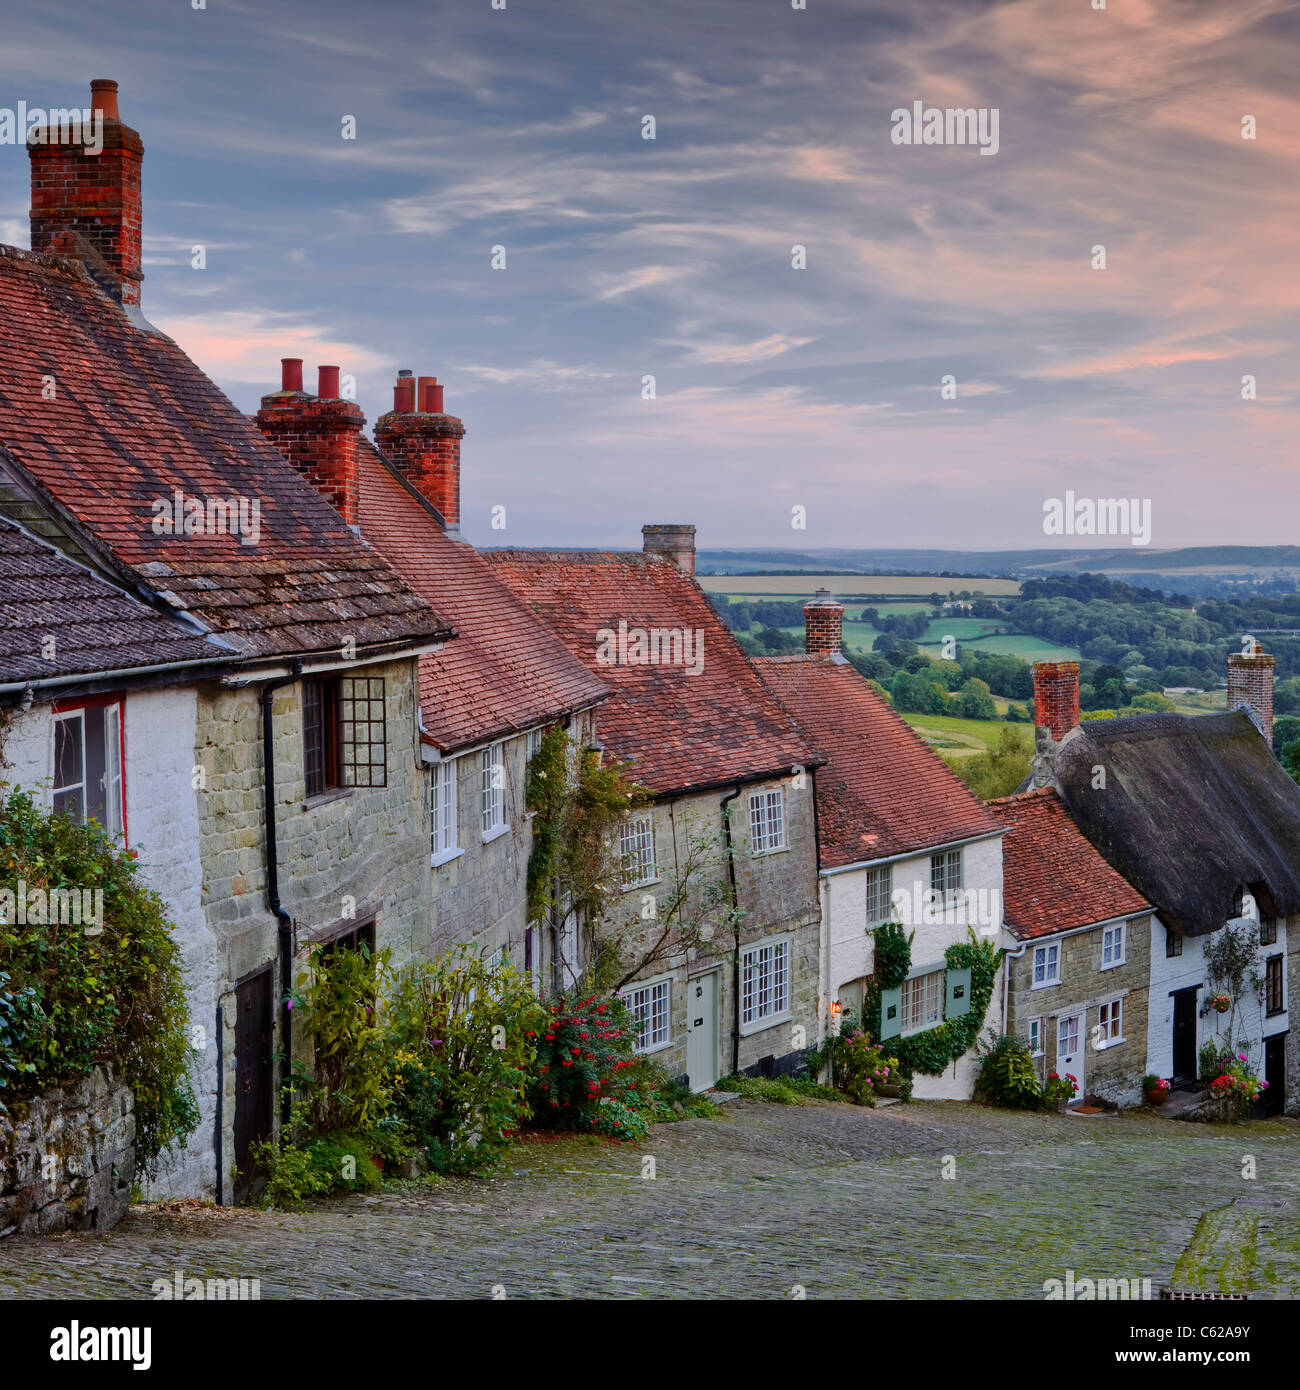 The iconic and classic view from Gold Hill in Shaftesbury, Dorset. The houses here date from the 17th century. - Stock Image